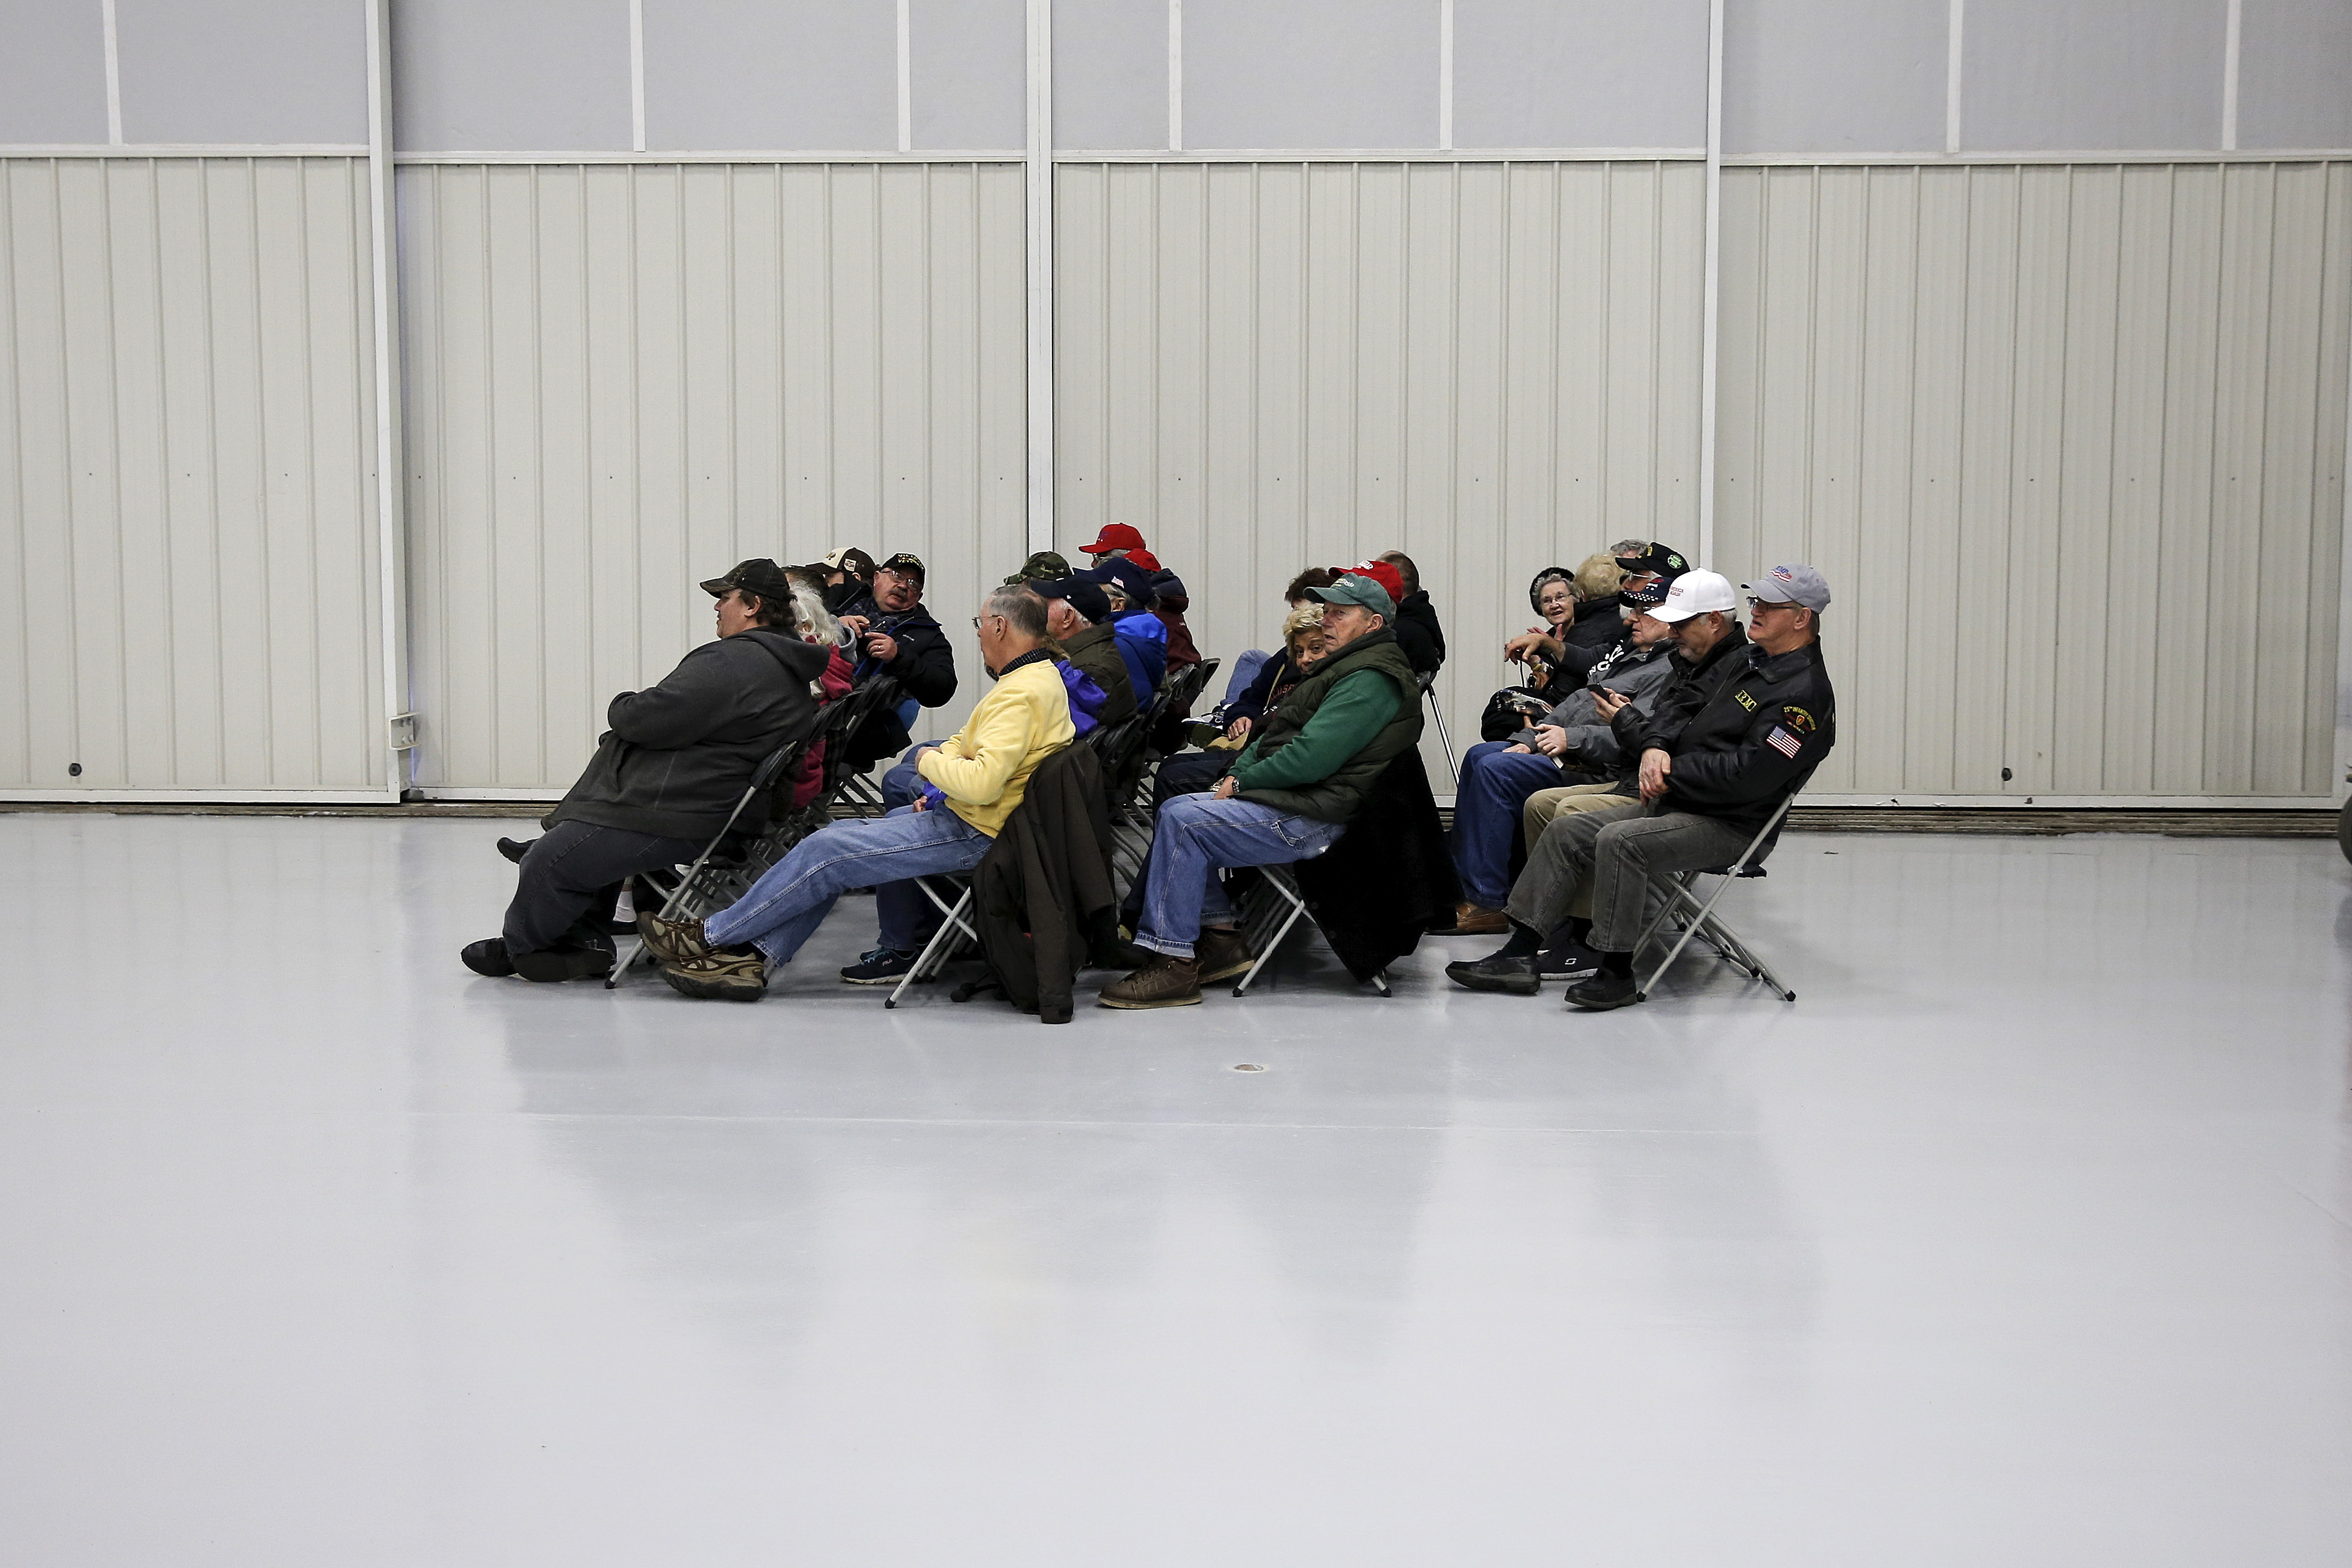 A group of people fill a seated area before Donald Trump speaks at a campaign event in an airplane hangar in Rome, New York, on April 12, 2016.